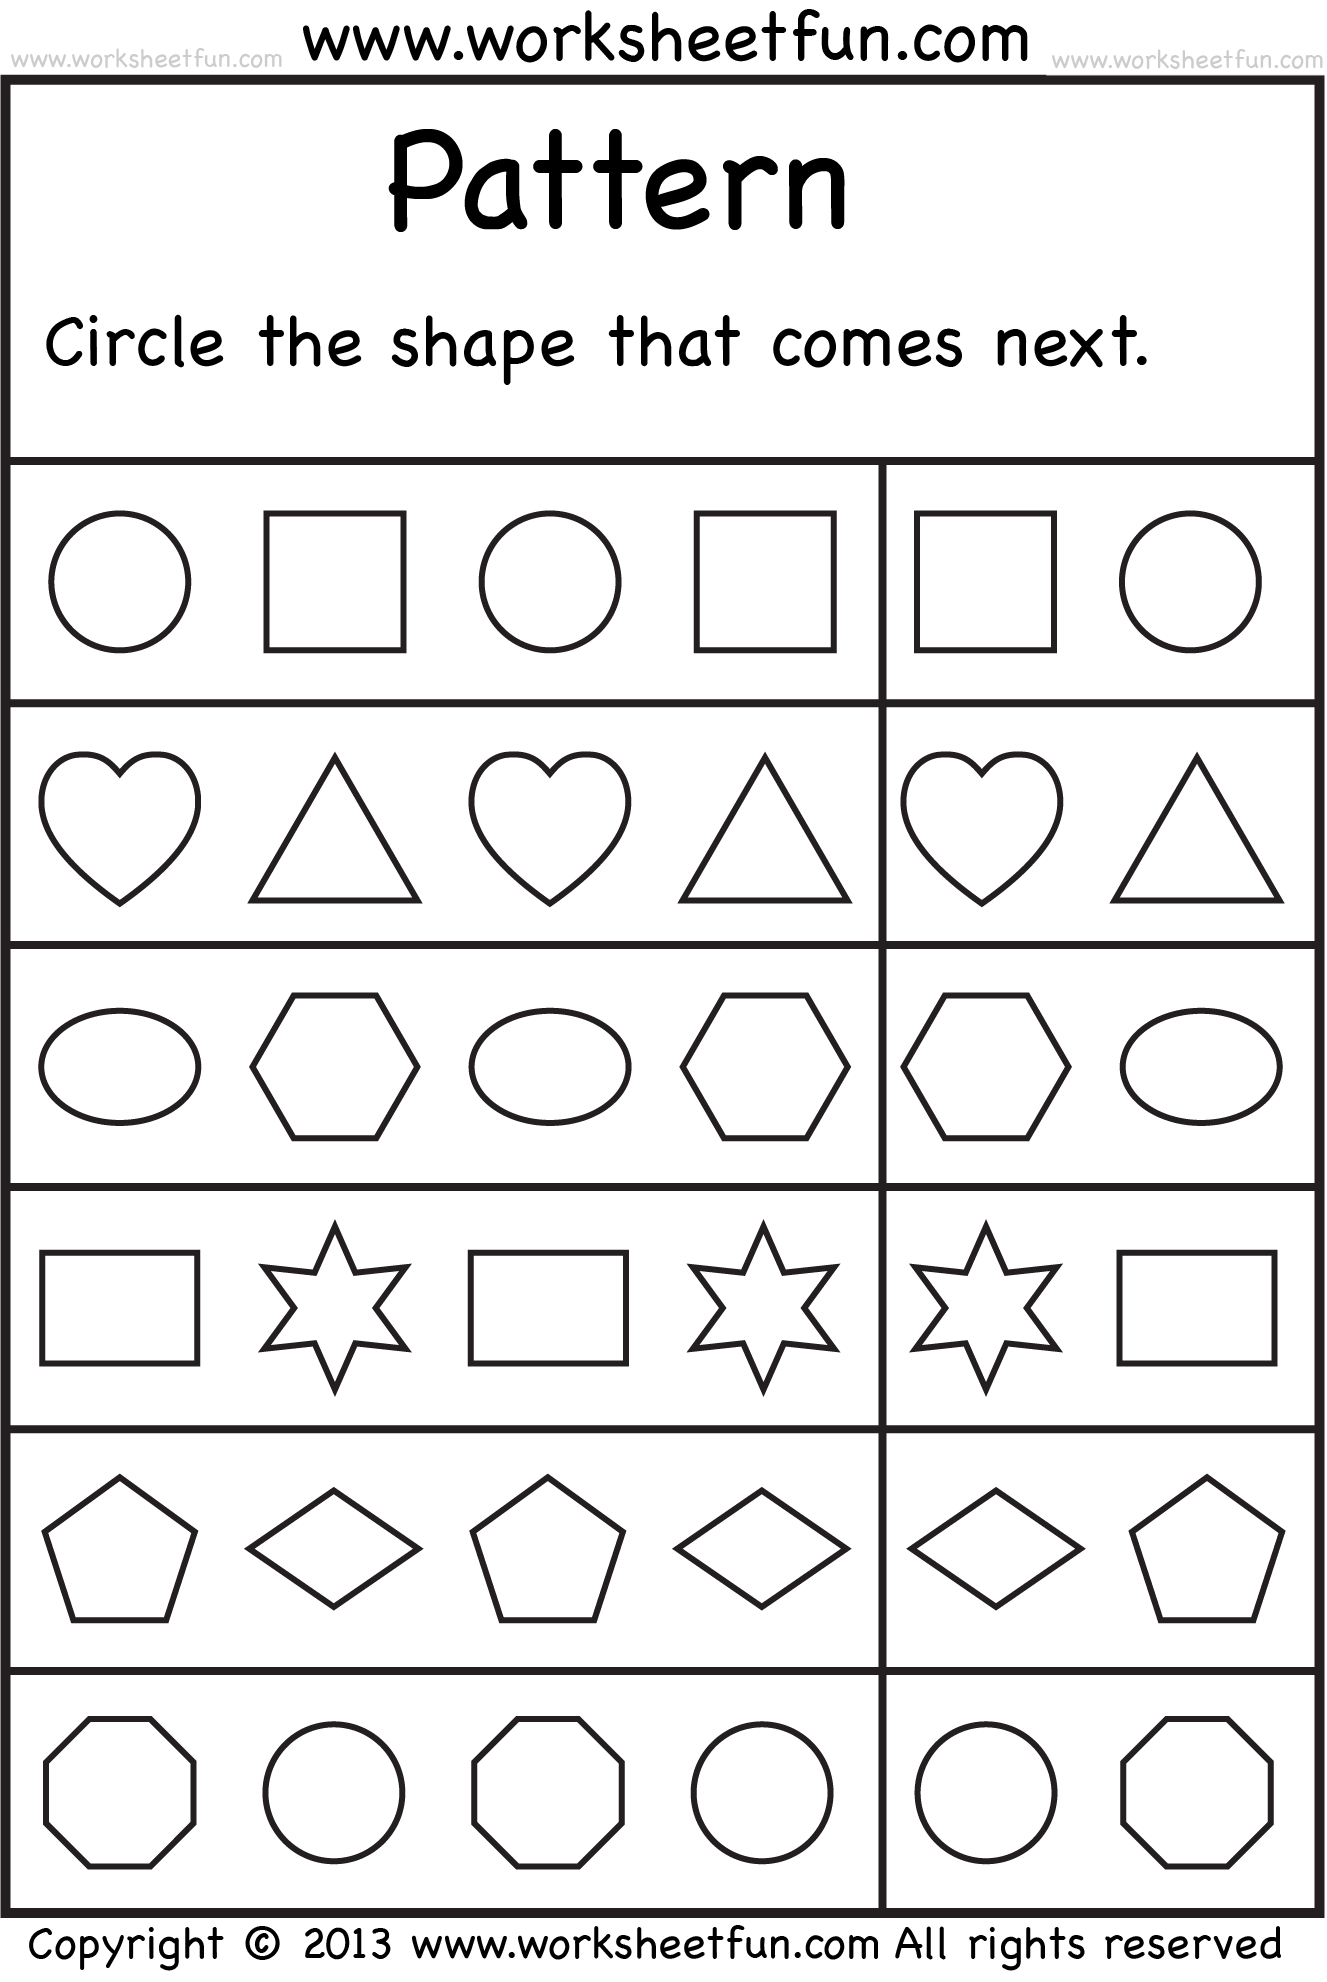 Weirdmailus  Fascinating  Images About School Worksheets On Pinterest  Number Words  With Likable  Images About School Worksheets On Pinterest  Number Words Alphabet Worksheets And Free Printable Kindergarten Worksheets With Amusing Quadratic Factorisation Worksheet Also Napoleon Bonaparte Worksheet In Addition Probability Two Way Tables Worksheet And Equation Worksheet As Well As Free Fourth Grade Math Worksheets Additionally Story Composition Worksheets From Pinterestcom With Weirdmailus  Likable  Images About School Worksheets On Pinterest  Number Words  With Amusing  Images About School Worksheets On Pinterest  Number Words Alphabet Worksheets And Free Printable Kindergarten Worksheets And Fascinating Quadratic Factorisation Worksheet Also Napoleon Bonaparte Worksheet In Addition Probability Two Way Tables Worksheet From Pinterestcom